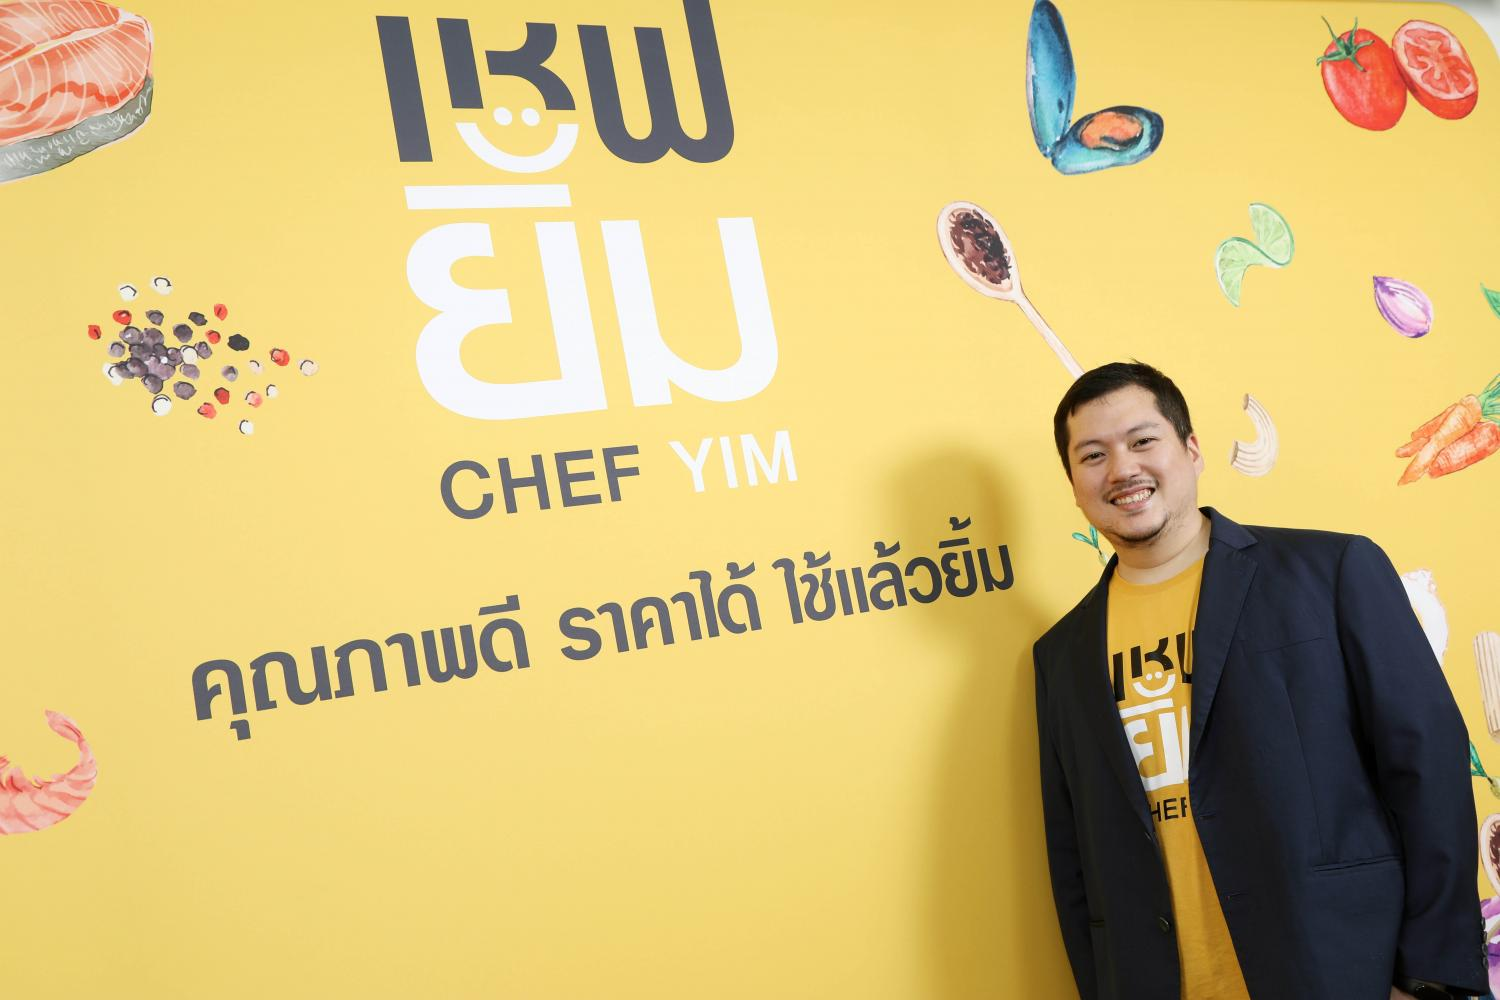 Mr Jirasak says CFR's business-to-business platform will help restaurants and caterers source ingredients.